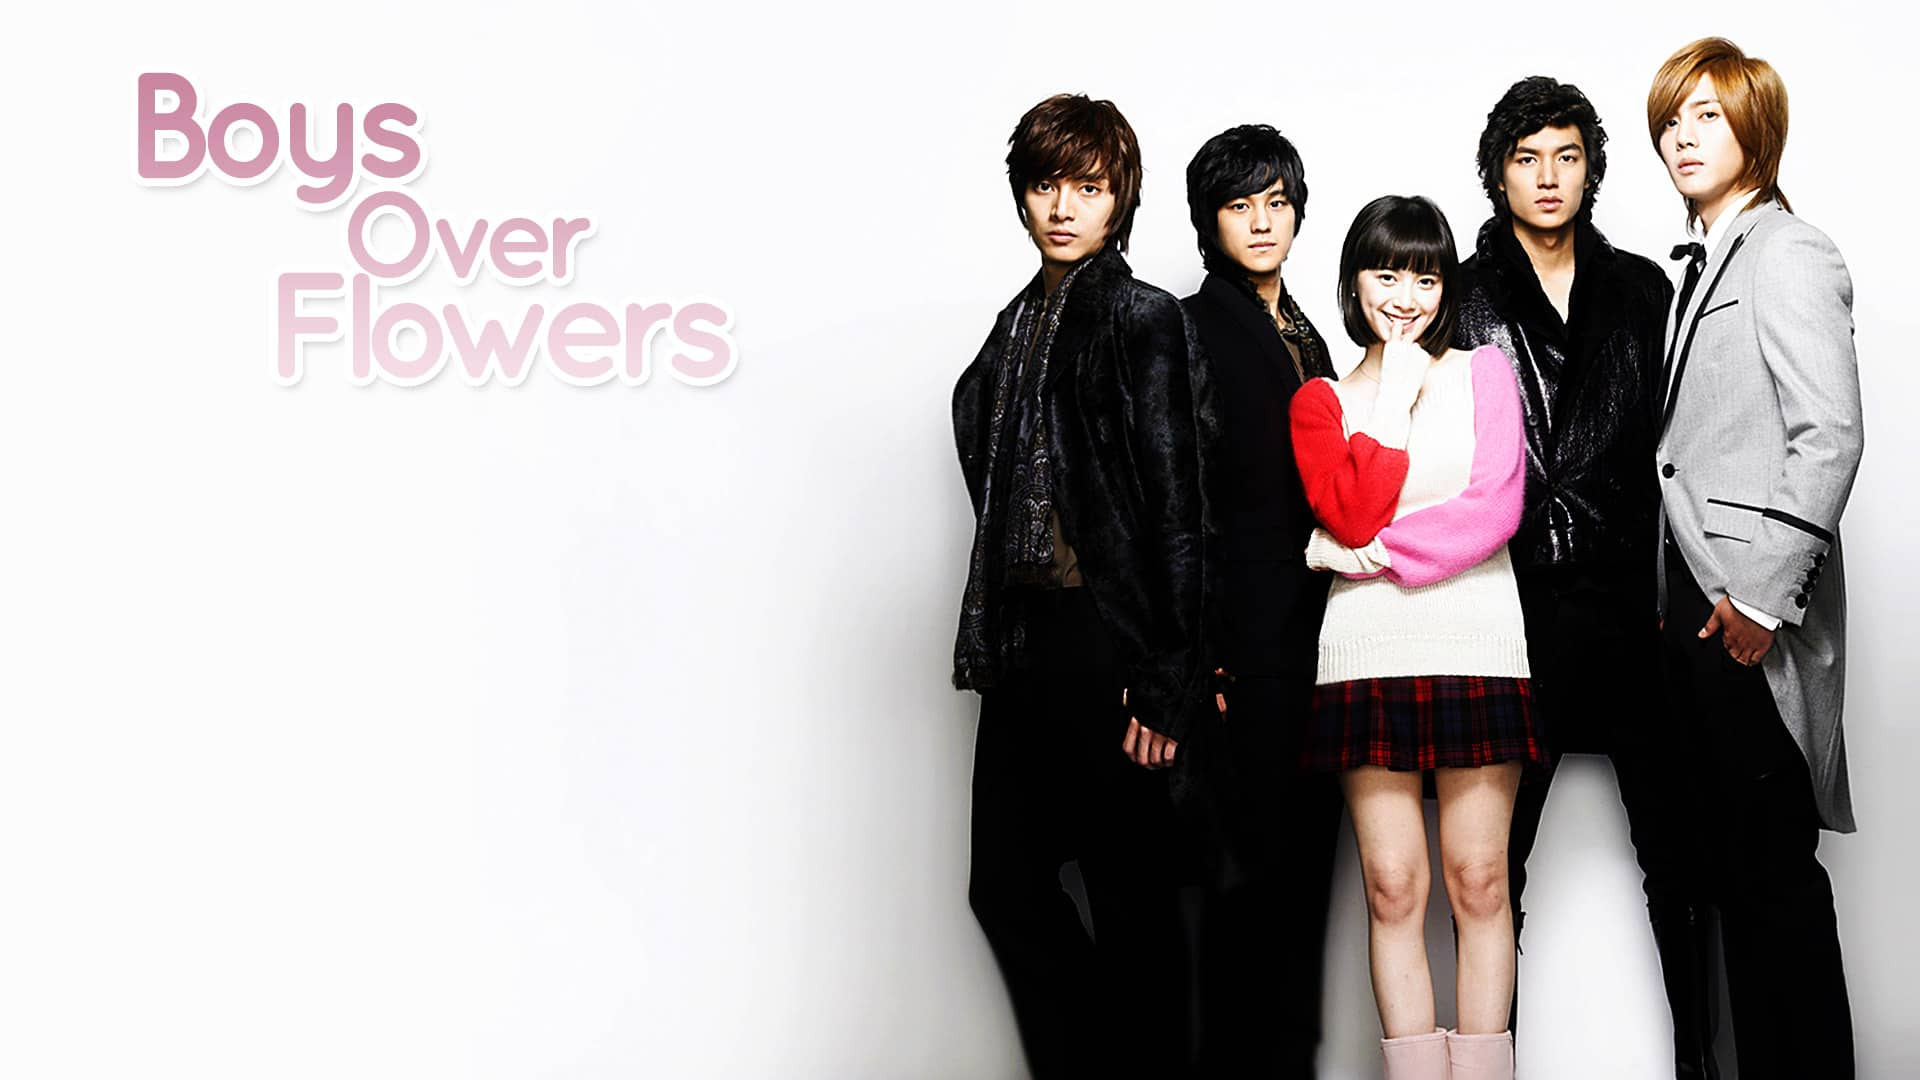 boys over flowers kore dizisi